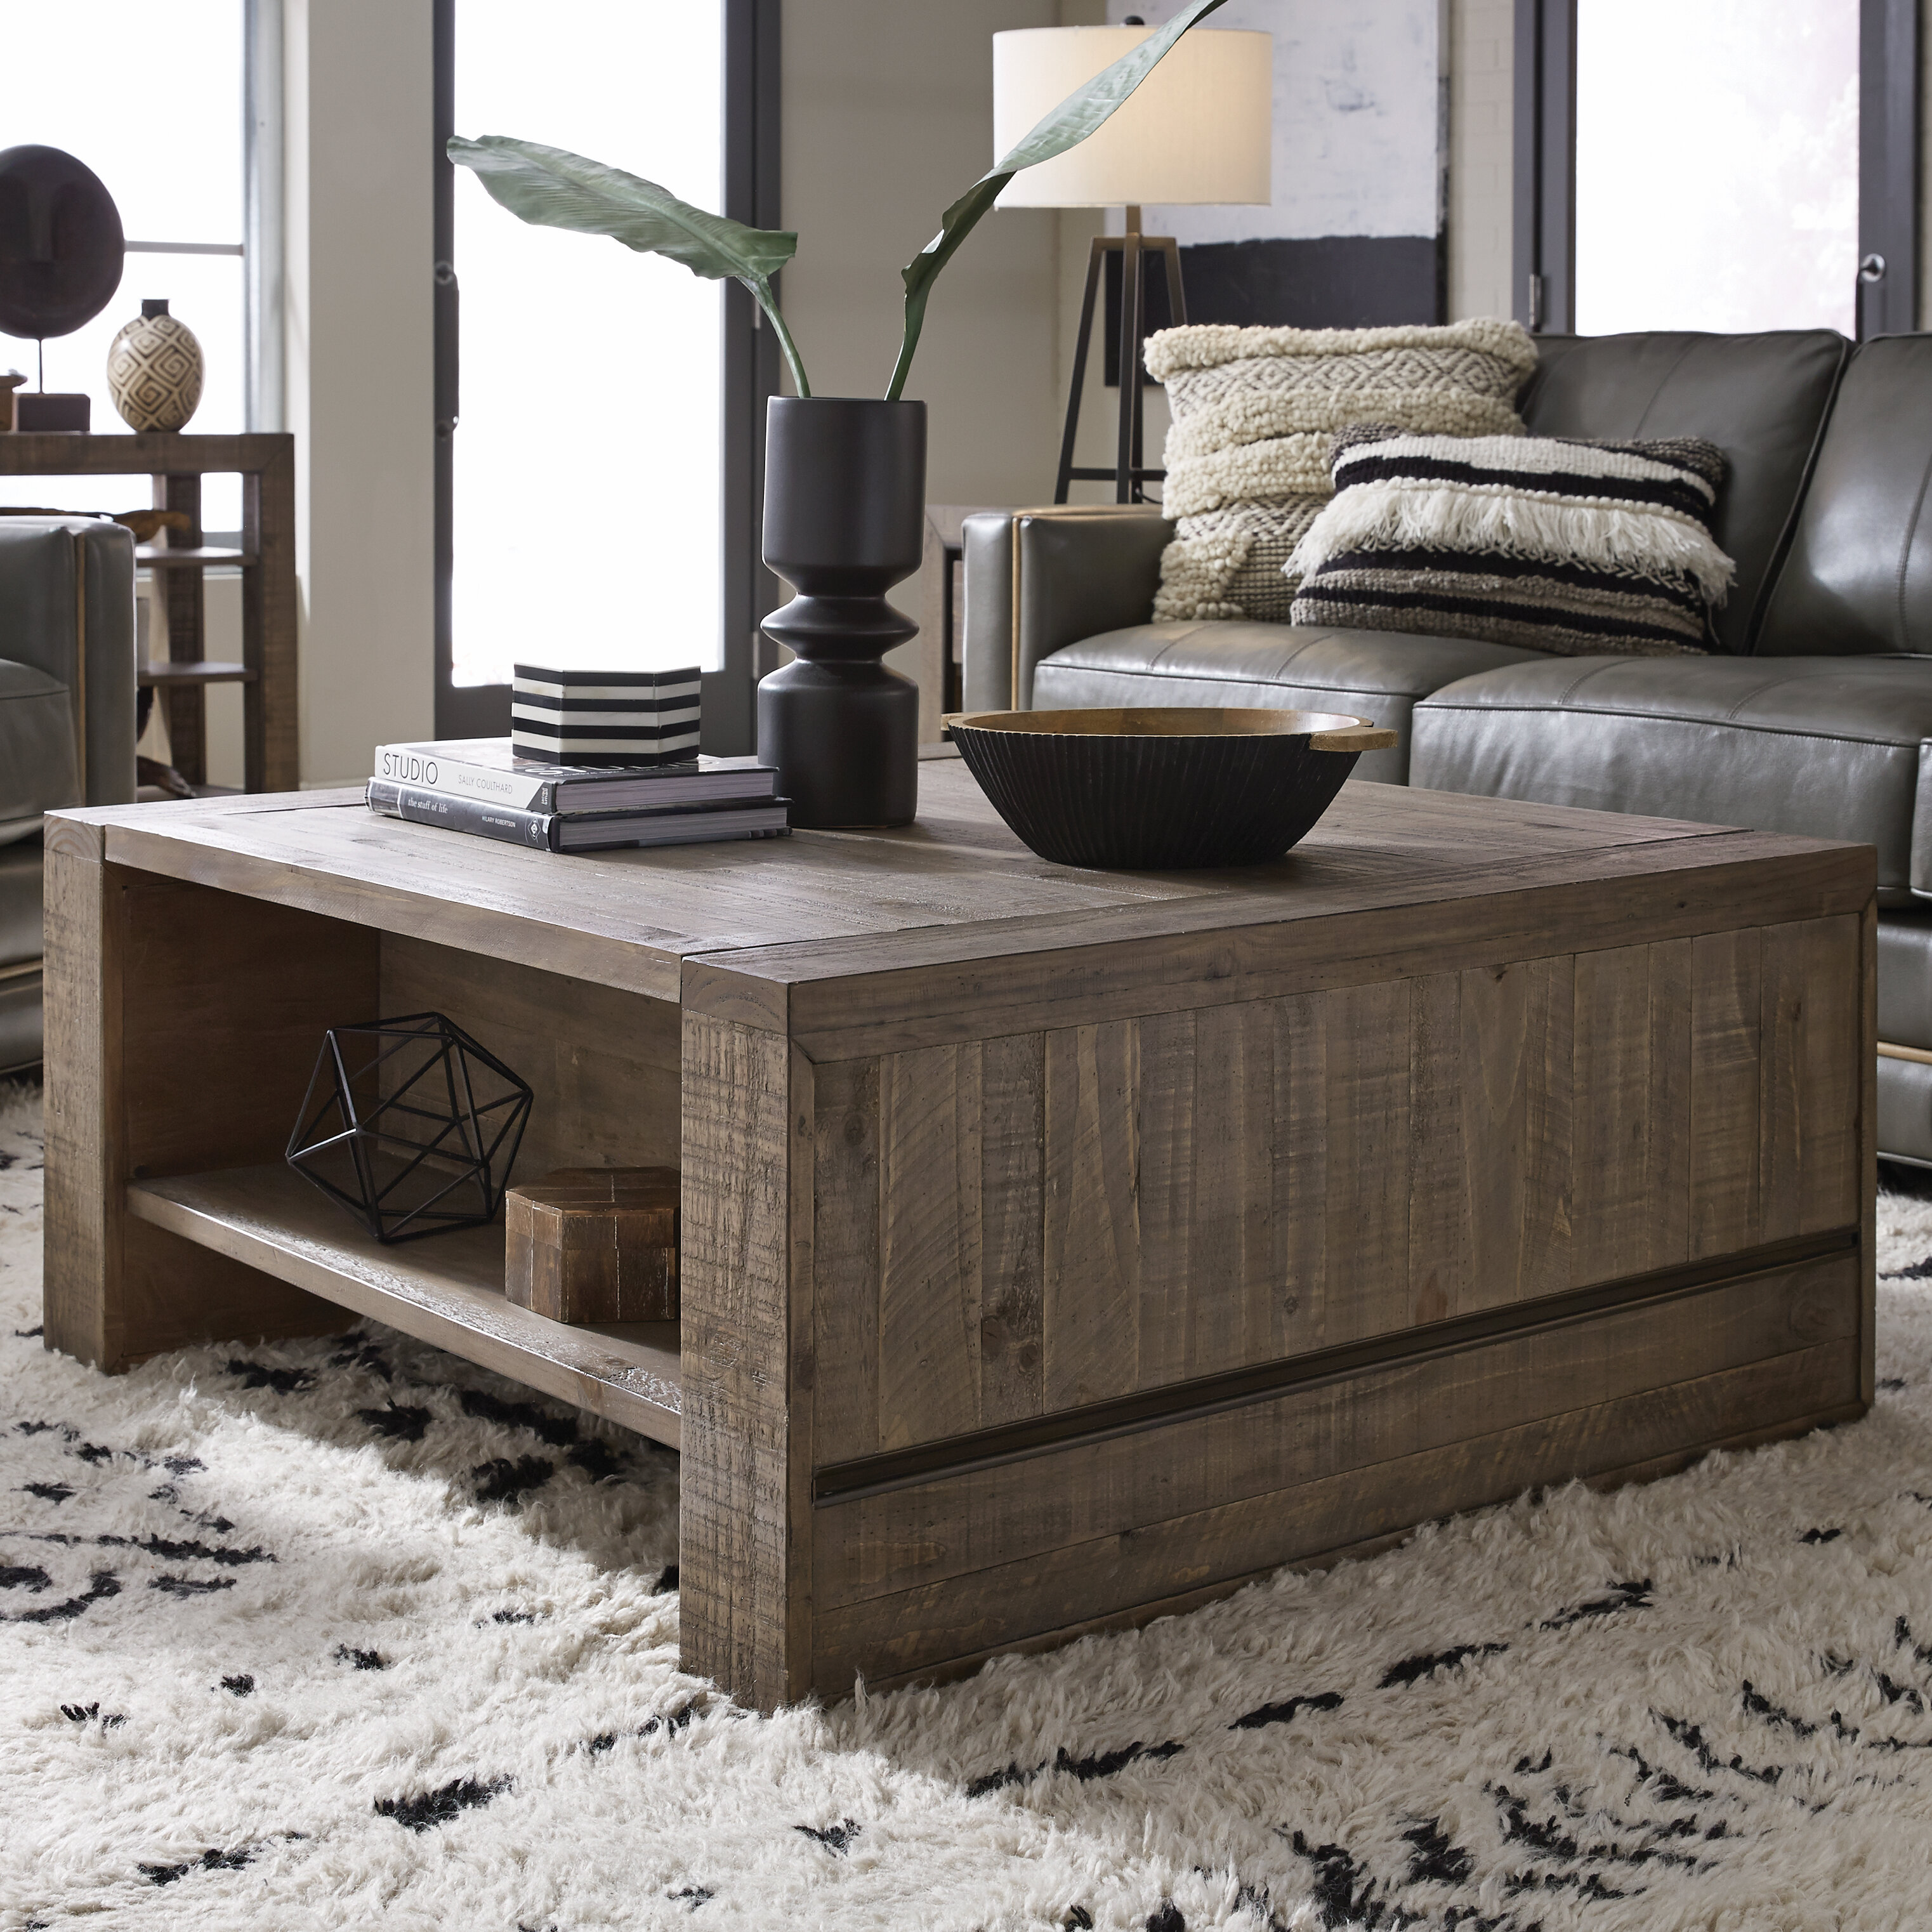 Foundry select norah lift top coffee table with storage reviews wayfair